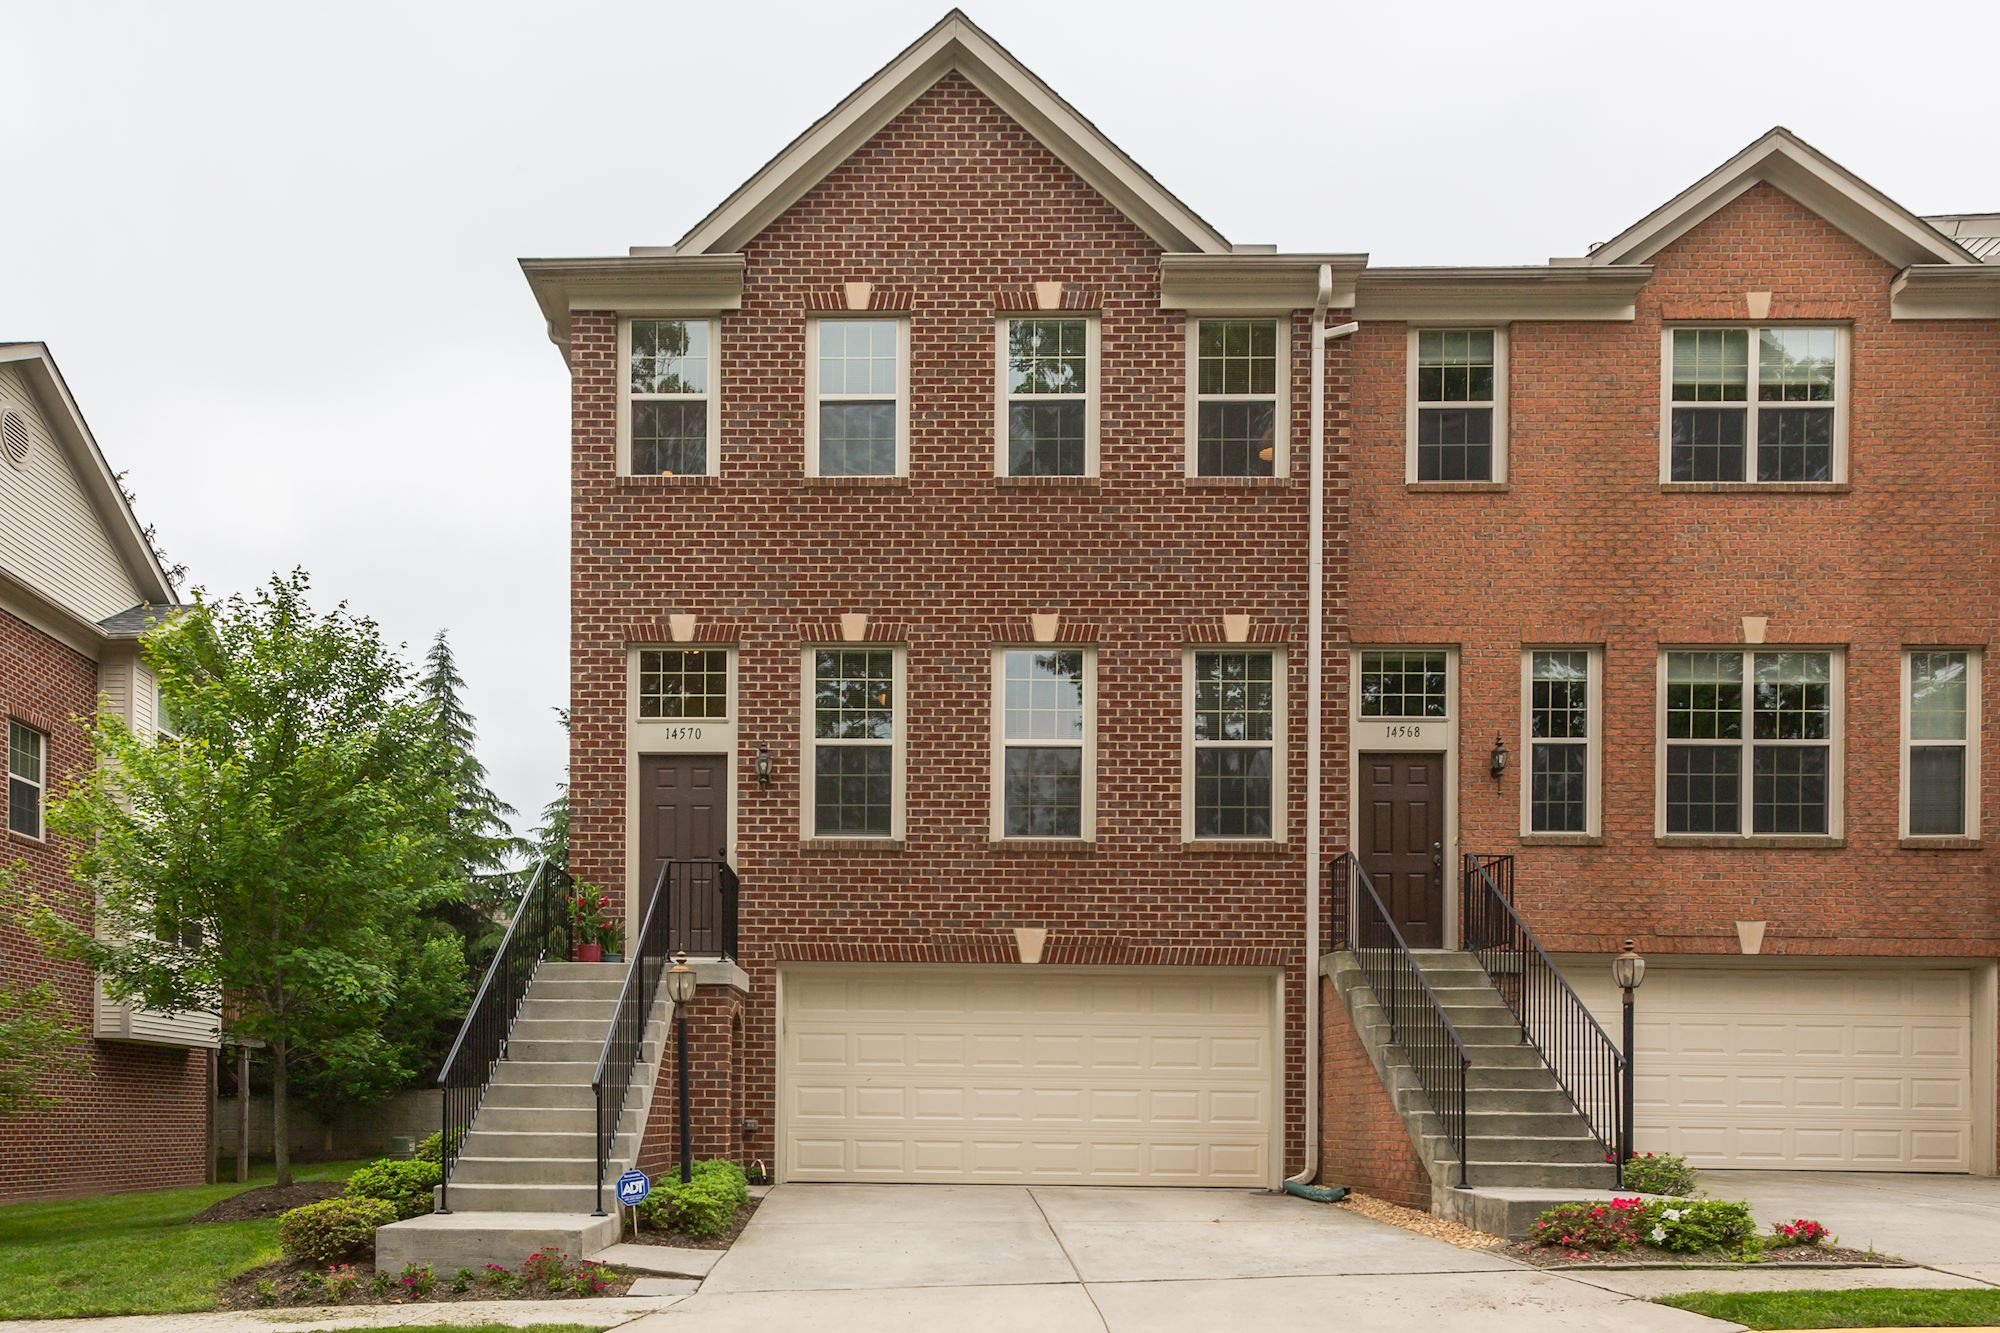 UNDER CONTRACT: 4 bd End-unit Townhouse in Centreville, VA